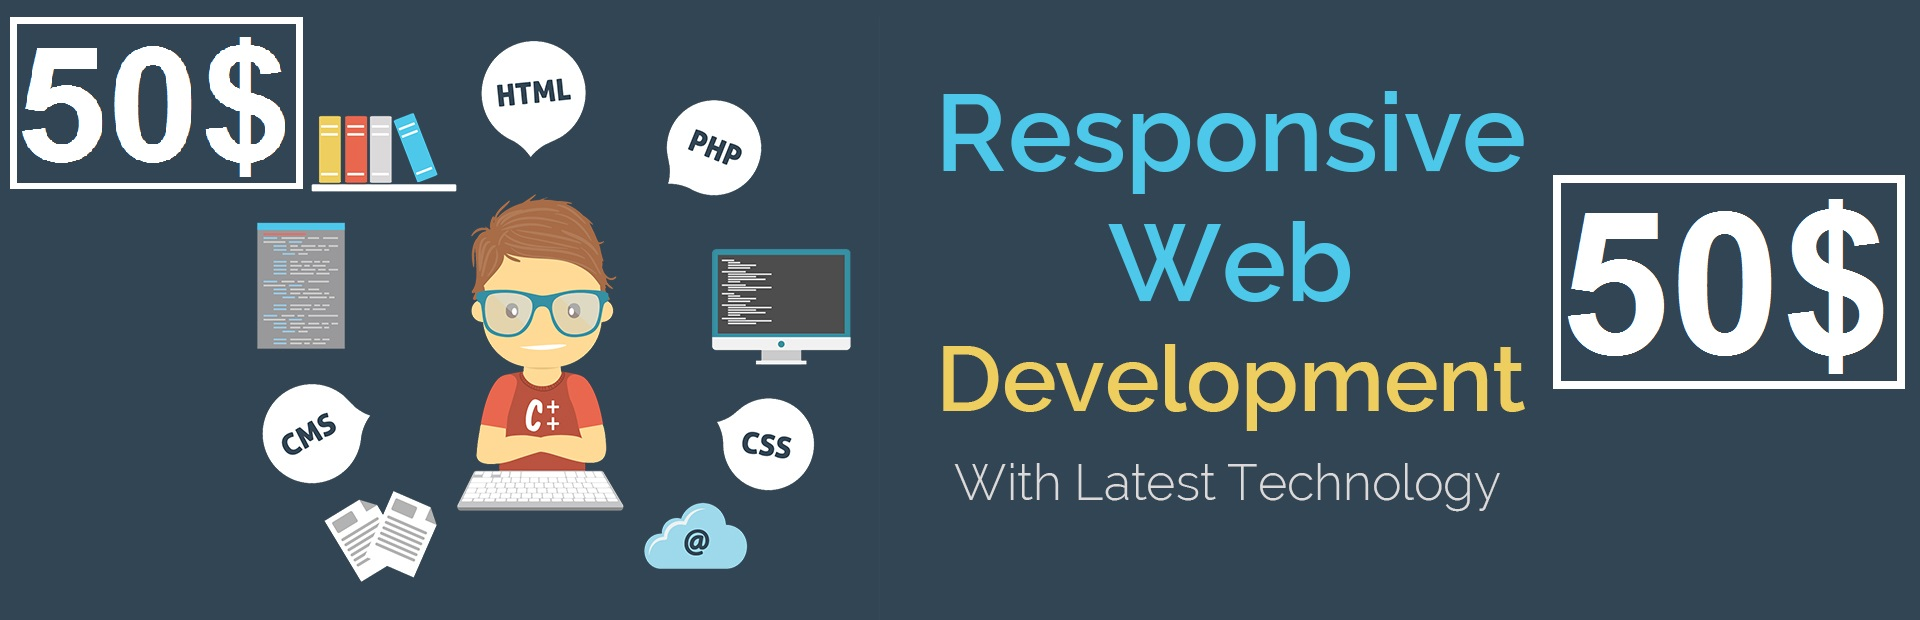 will do Web Development for you